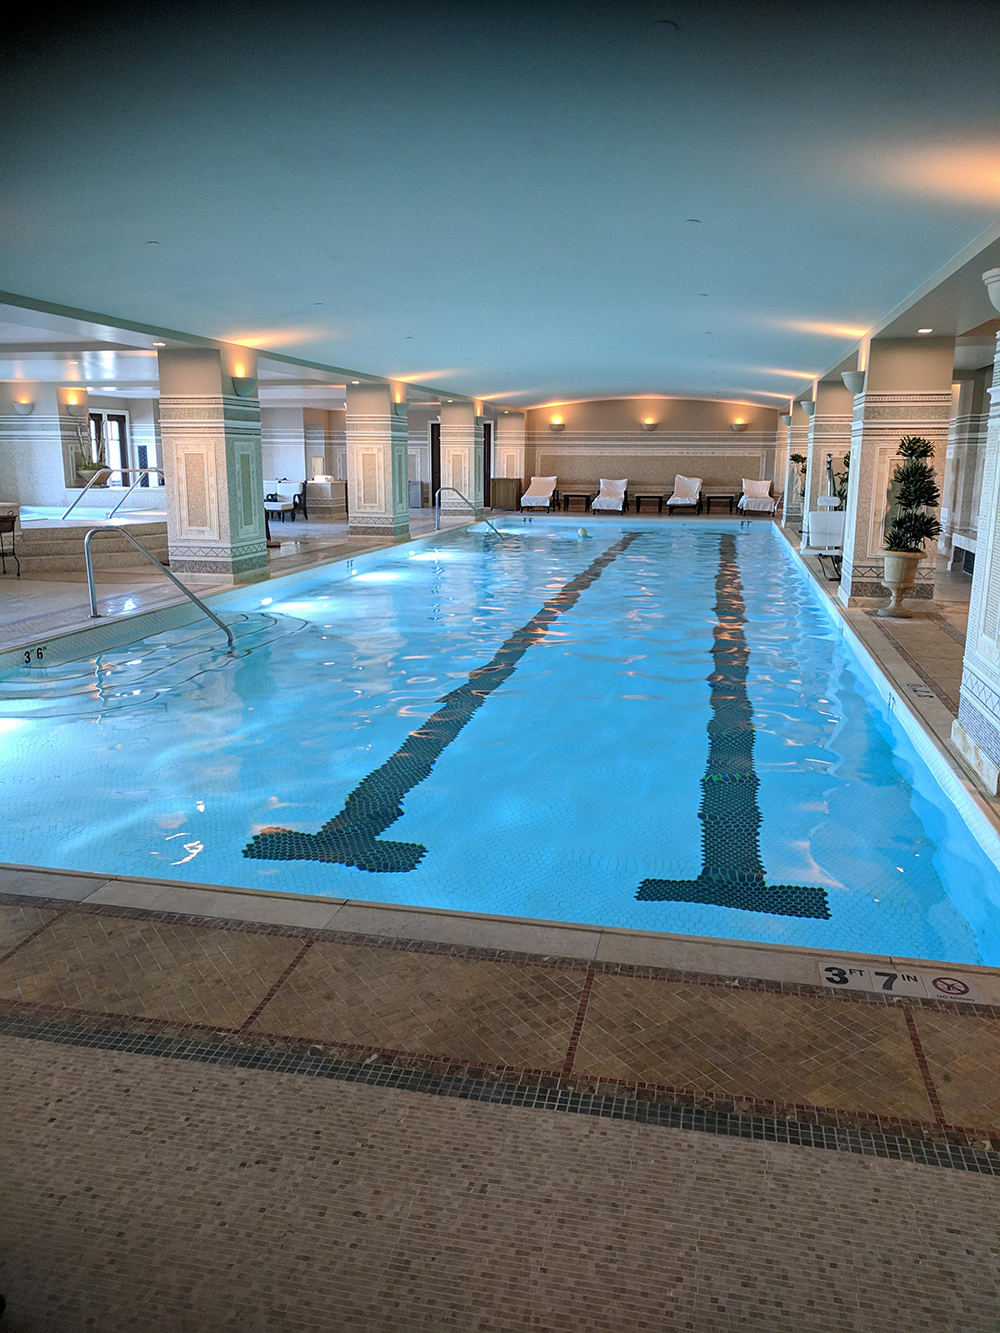 The co-ed indoor lap pool is designed with high-end mosaic.